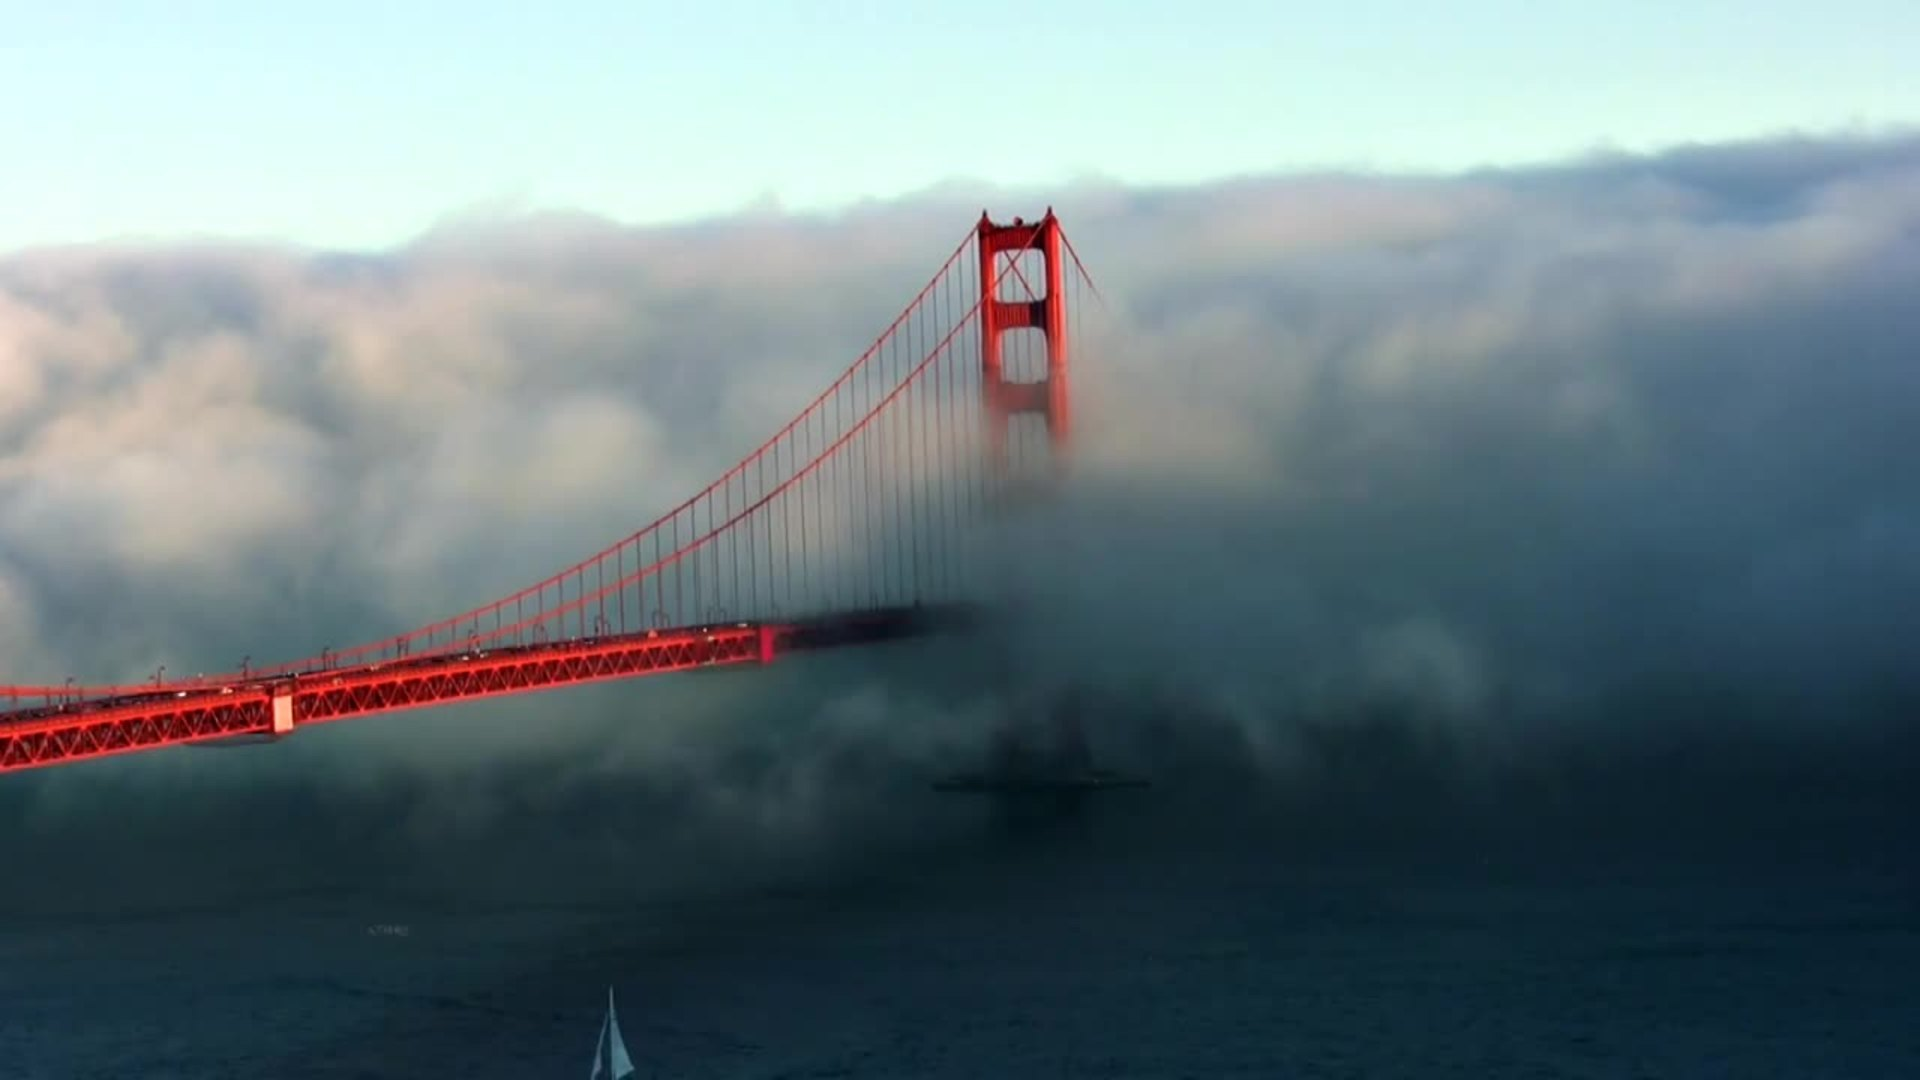 golden_gate_bridge_timelapse_hd_stock_video